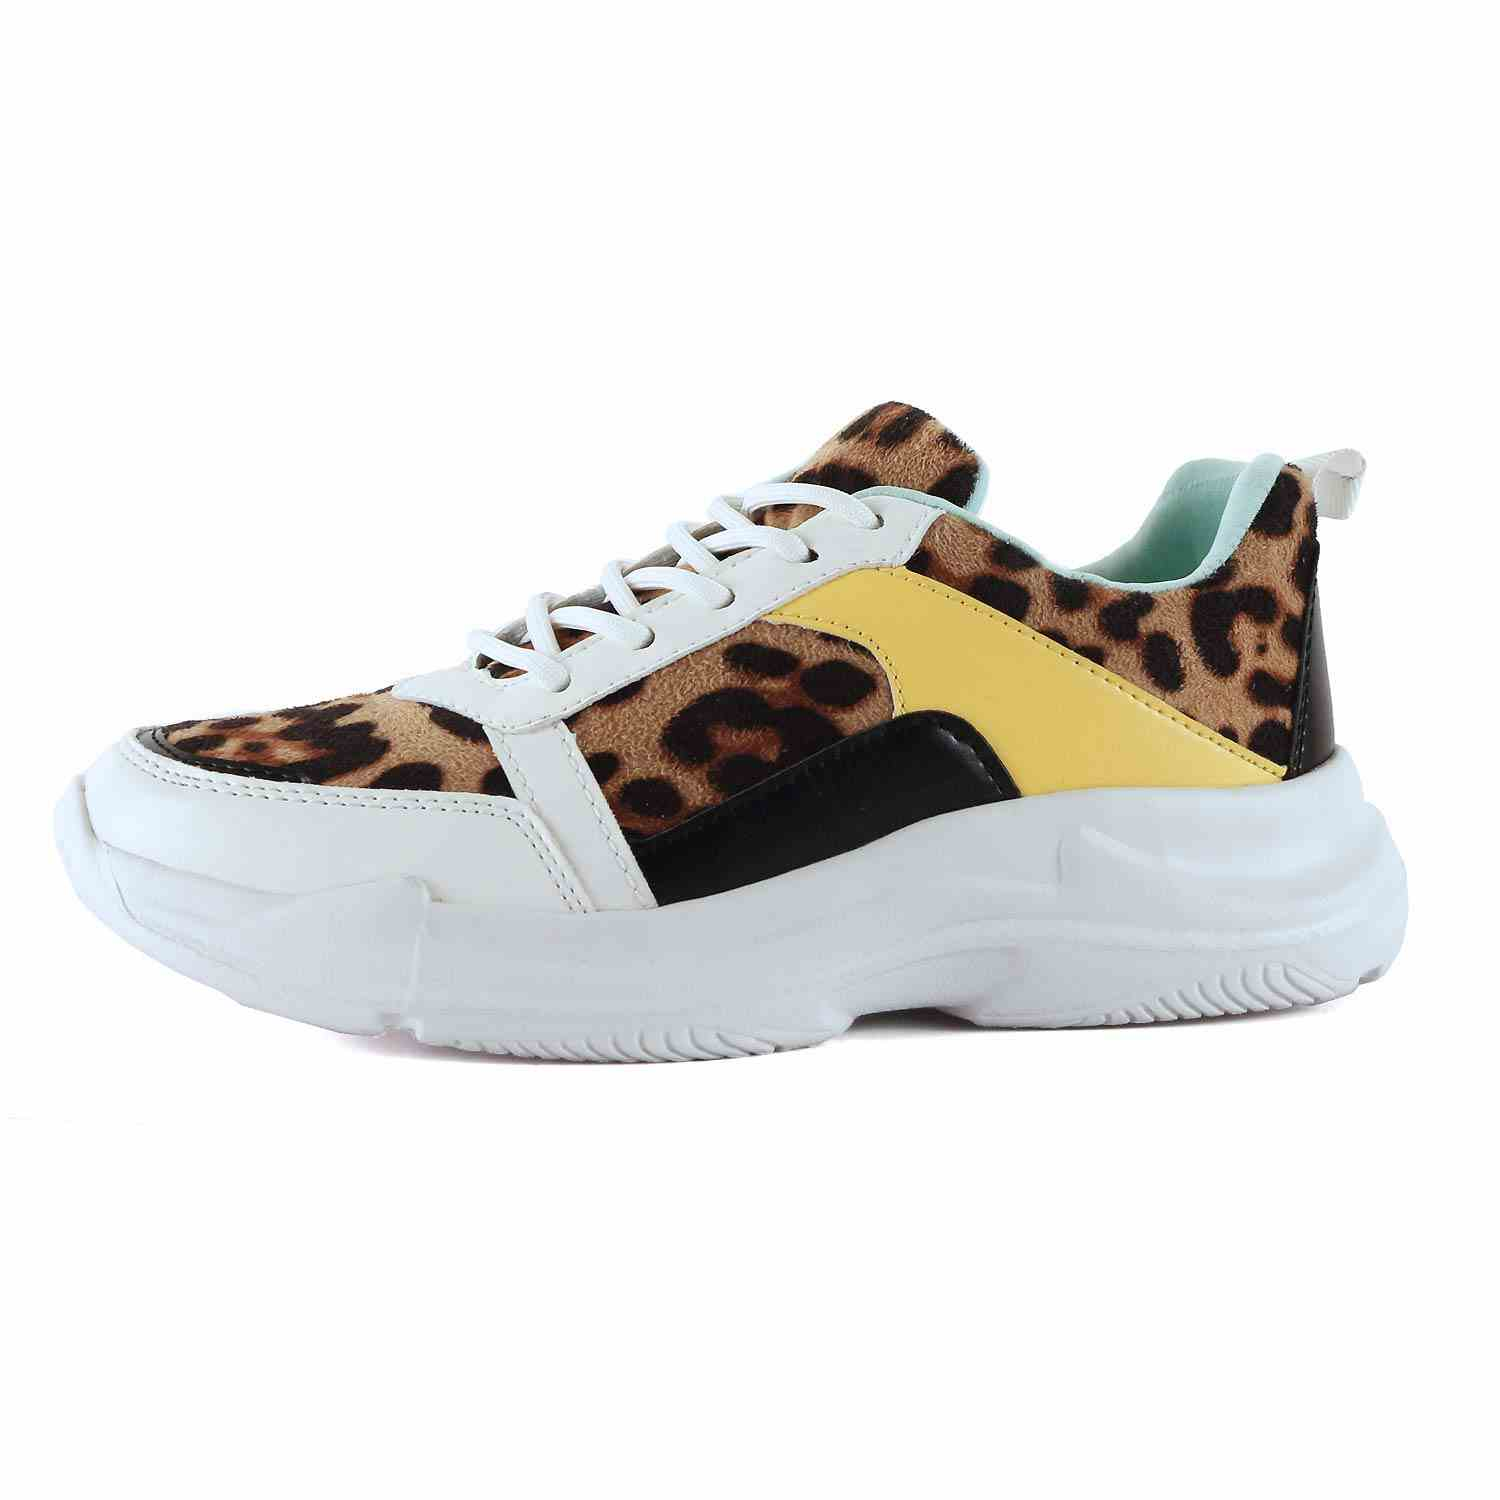 Womens Retro Multimaterial Daddy Colorblock High Platform Fashion Comfortable Sneakers